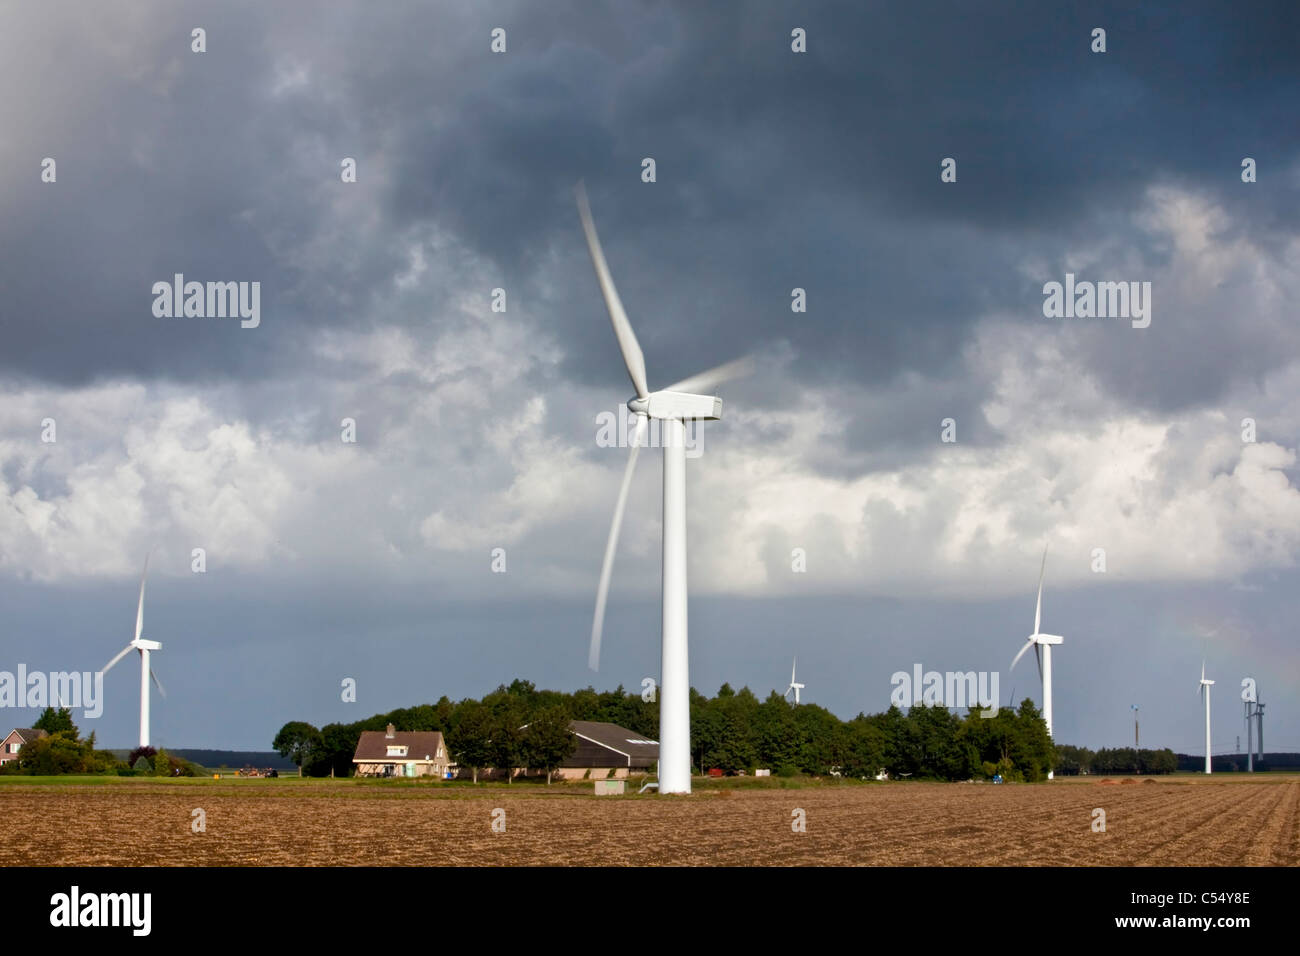 The Netherlands, Almere, Wind turbines, windmills and farm - Stock Image